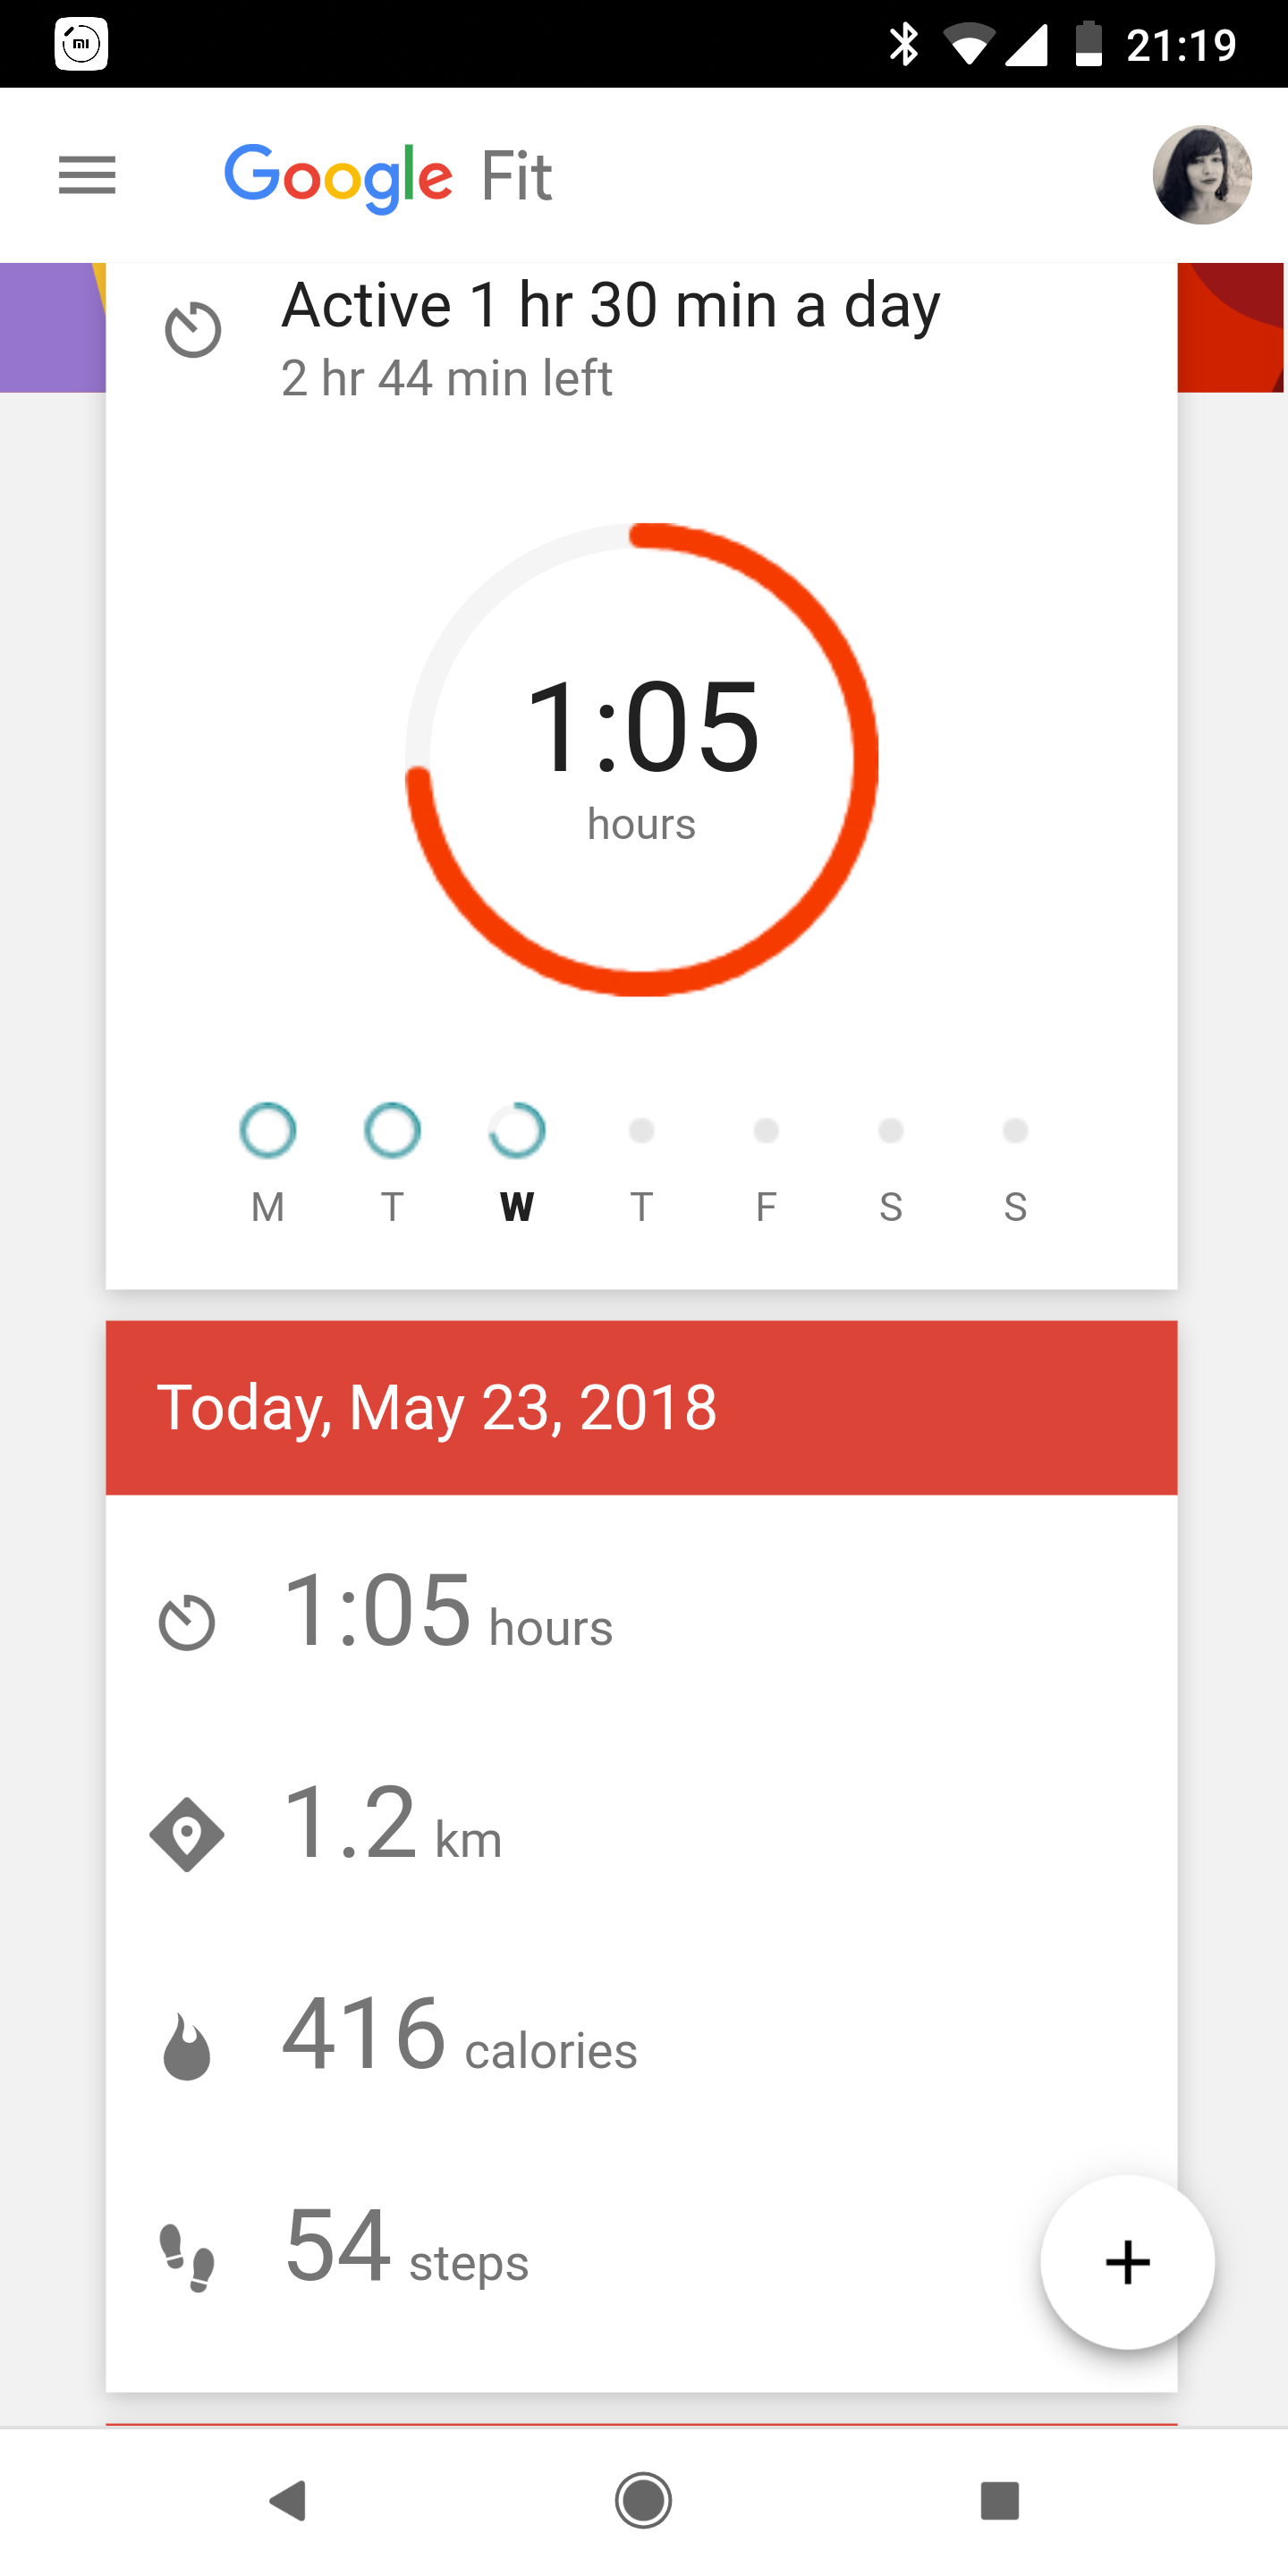 The steps being tracked in the Google Fit app do not reflect